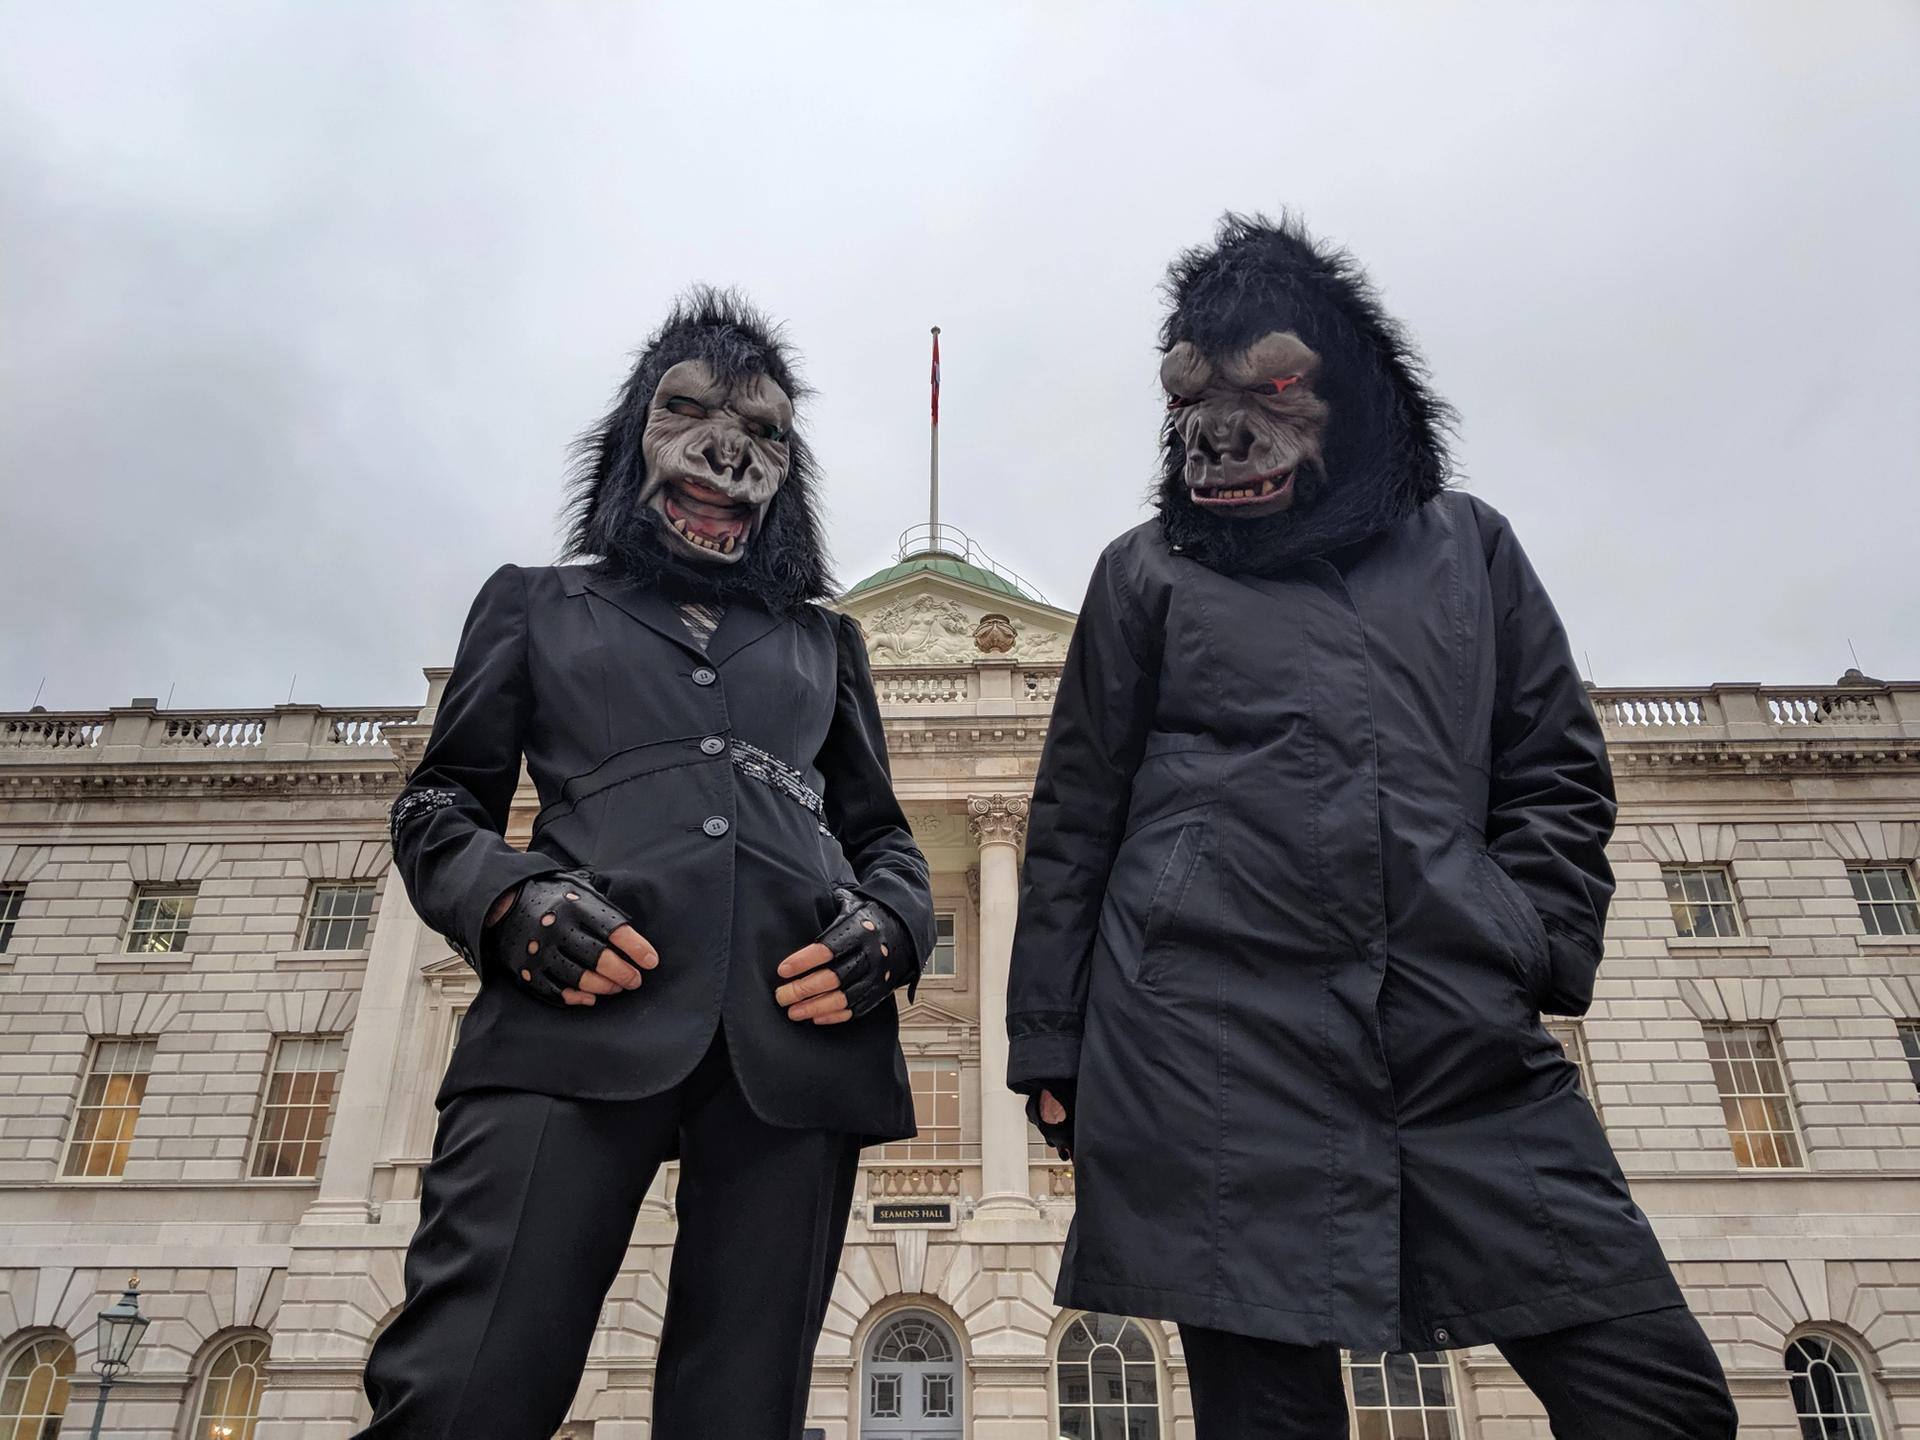 Guerrilla Girls on a site visit at Somerset House, London, in January 2020 for Art Night Photo: Cathy Buckmaster; courtesy of the artists and Art Night